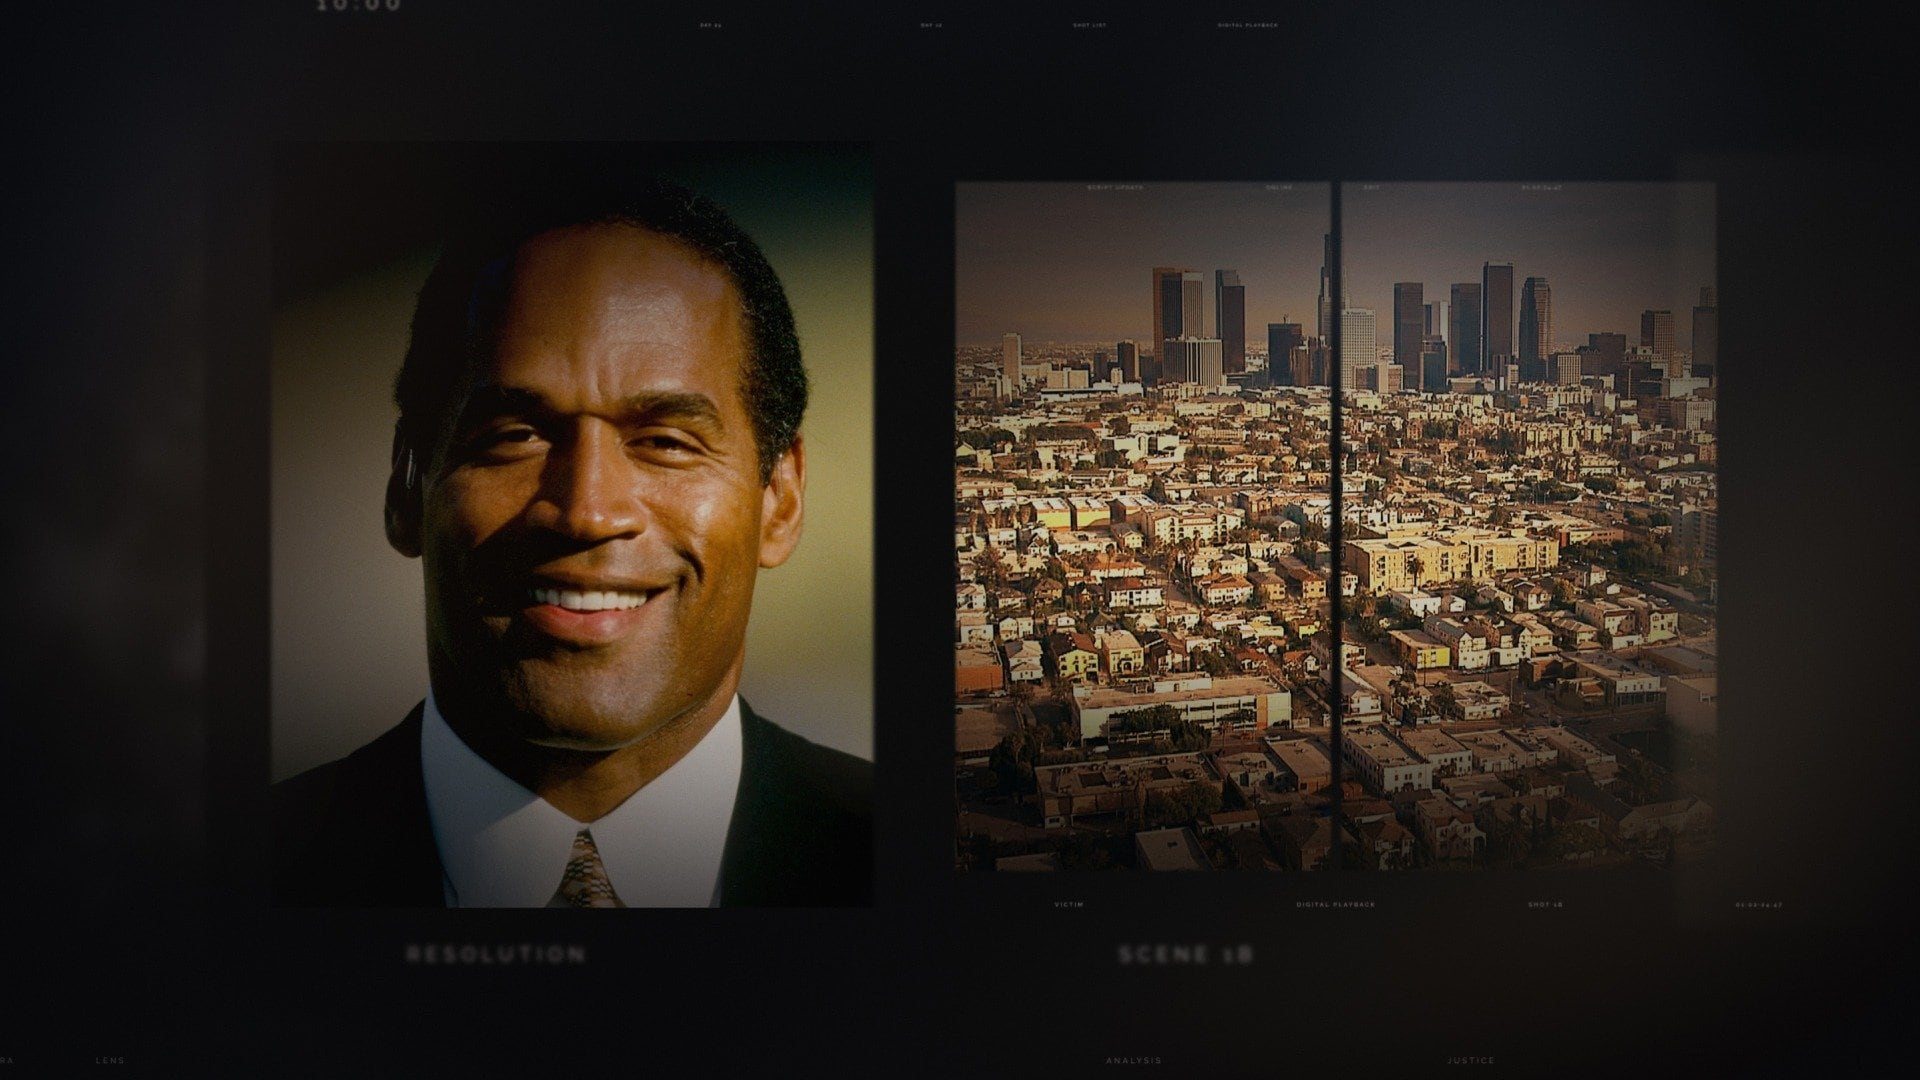 Chasing O.J. Simpson: The Untold Stories